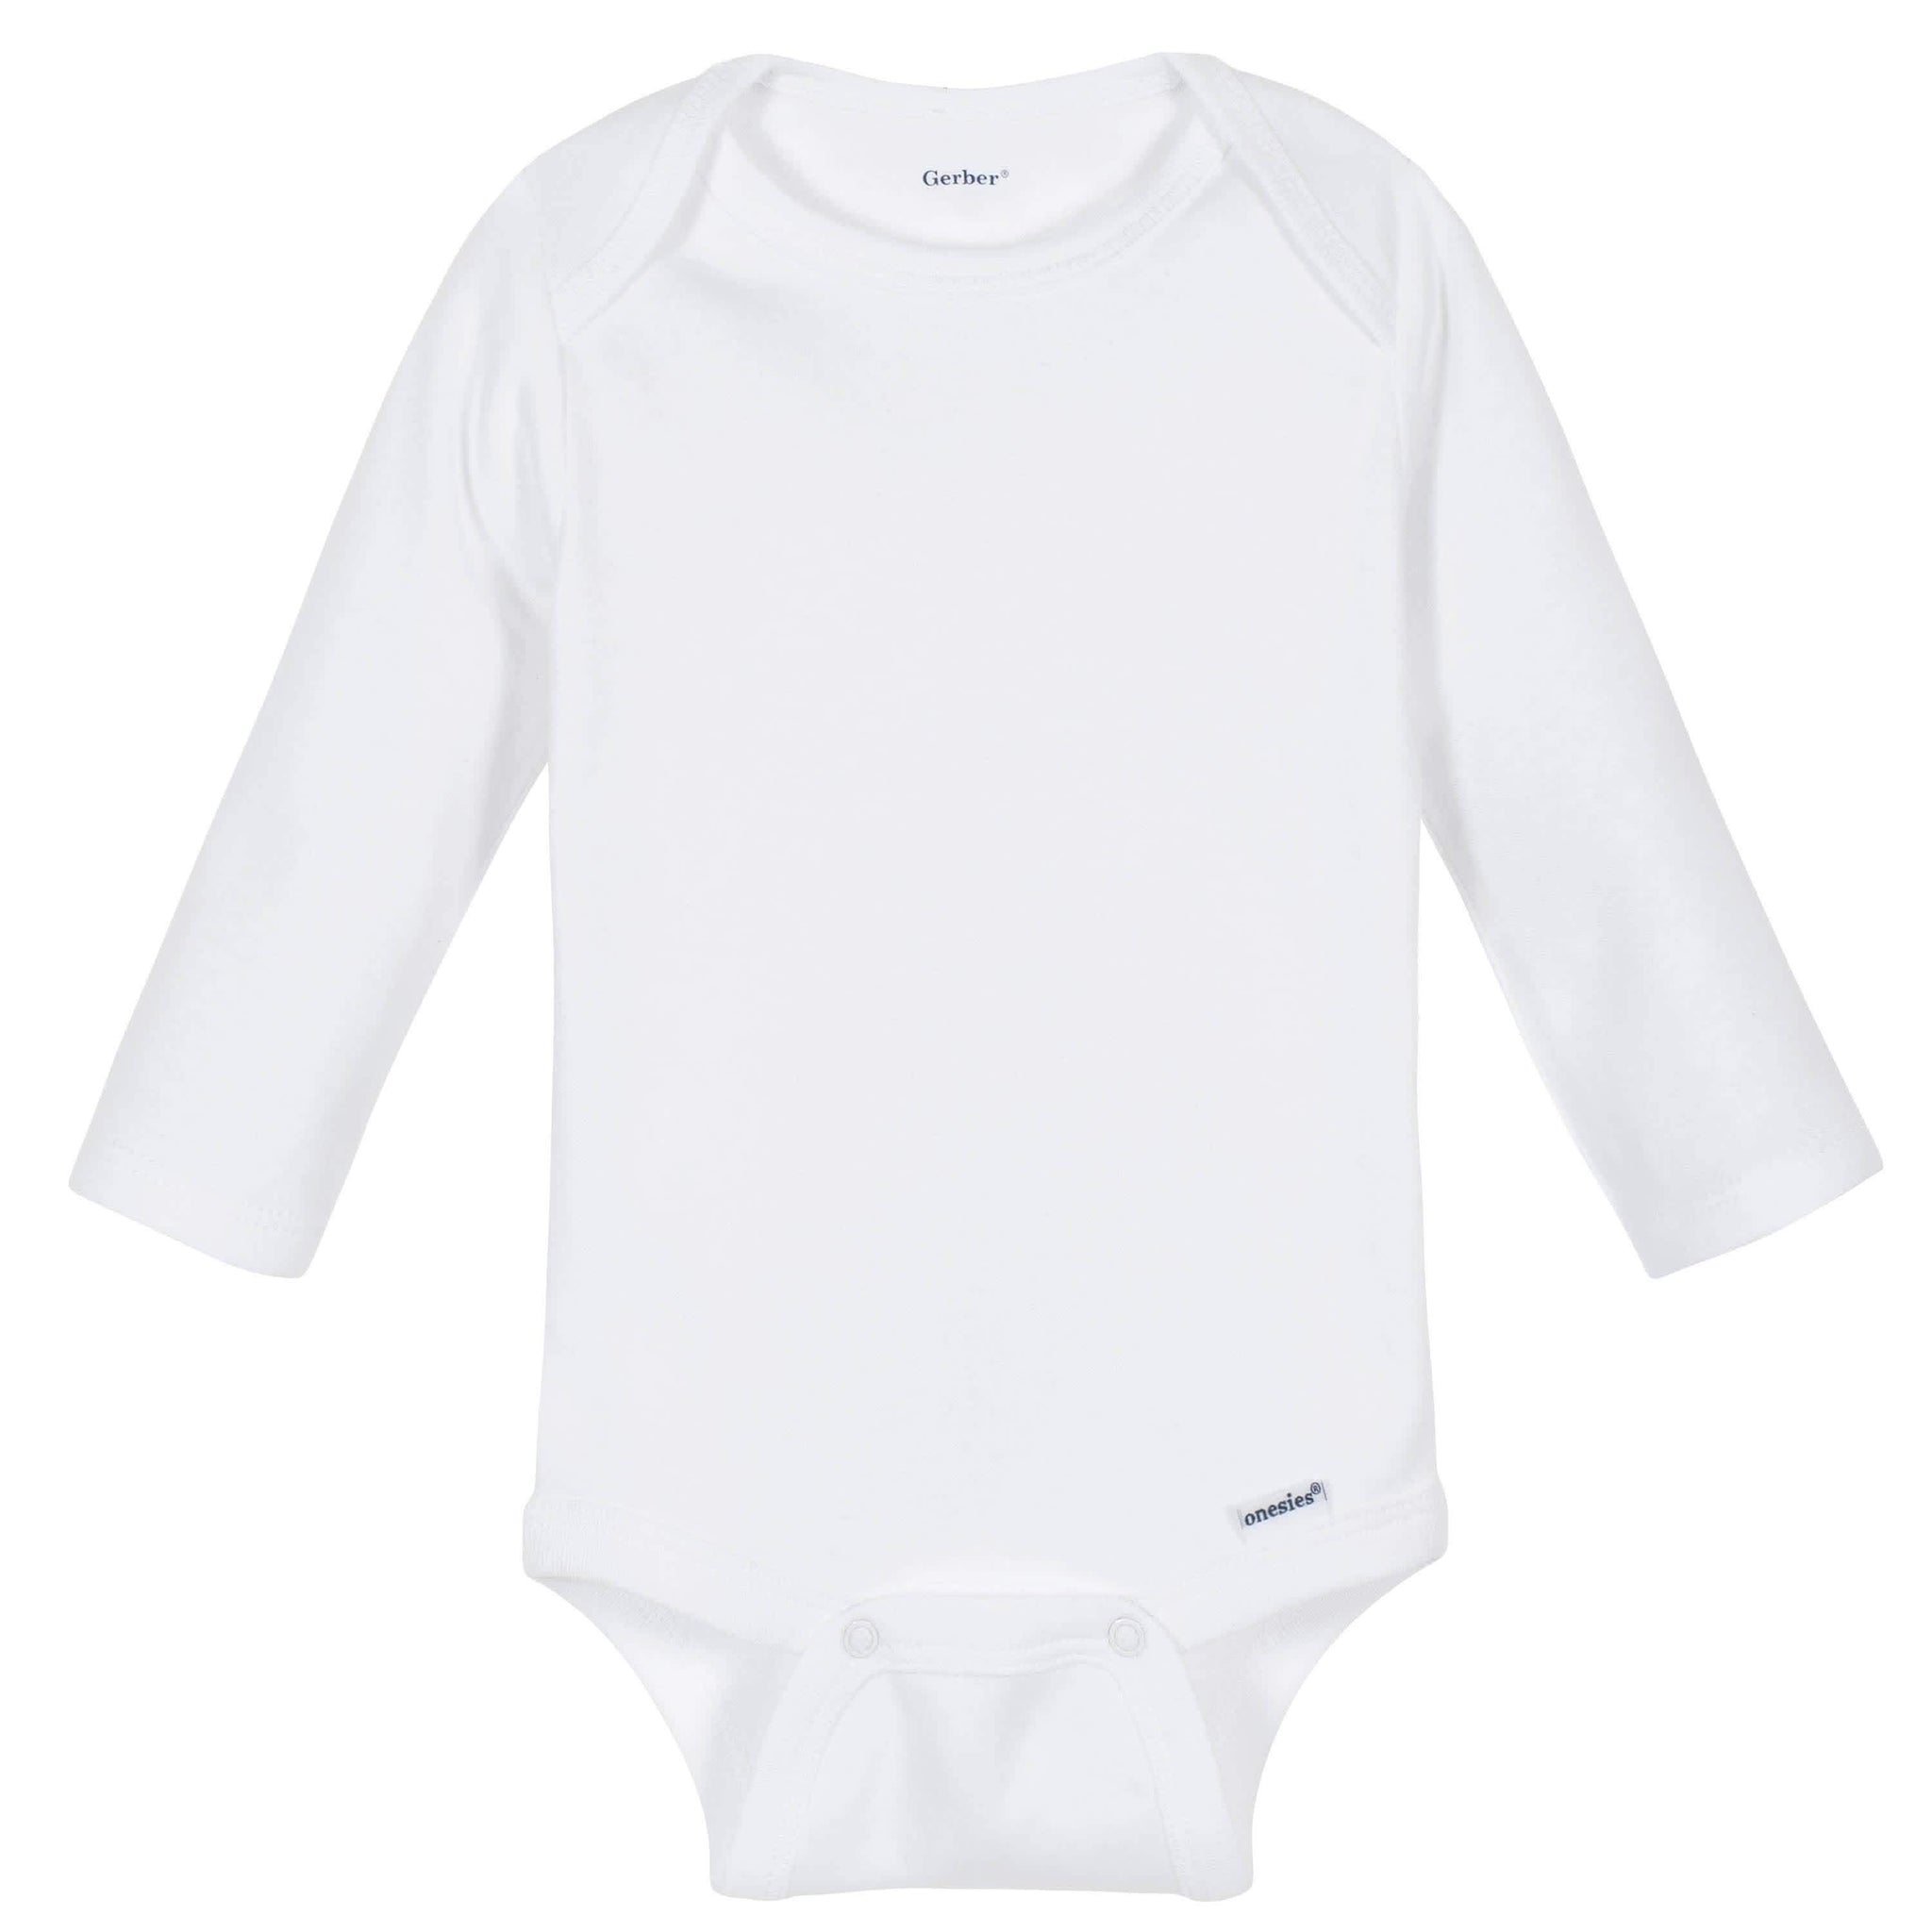 Gerber® Premium White Long Sleeve Onesies® Brand Bodysuit - 10 Colors Available